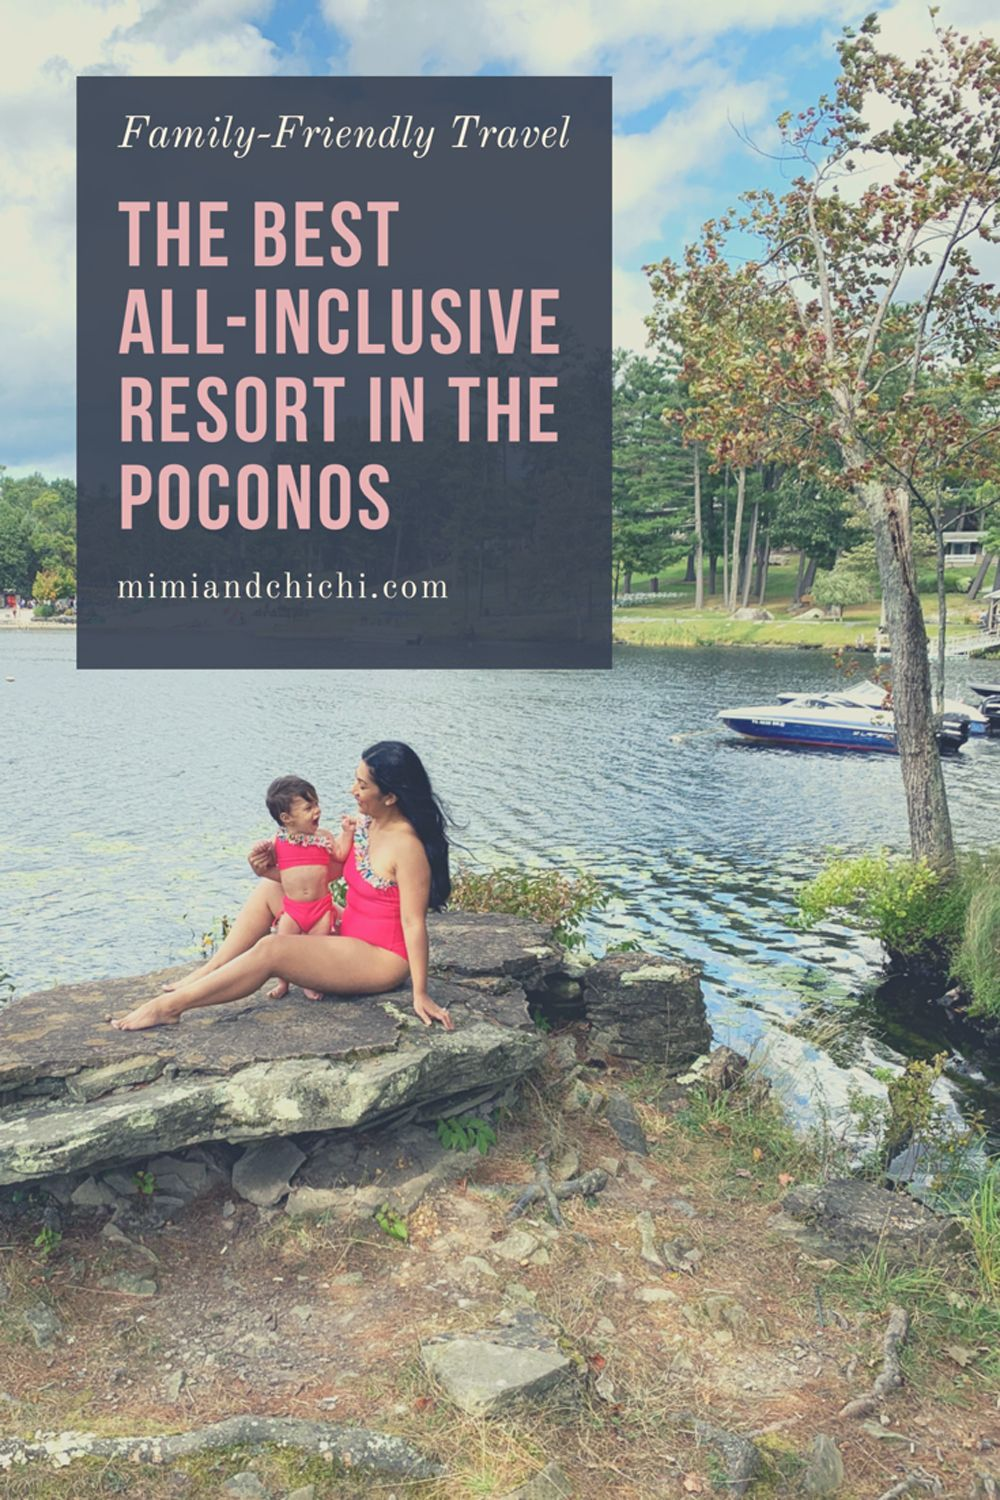 Go To This All-inclusive Resort In The Poconos For Your